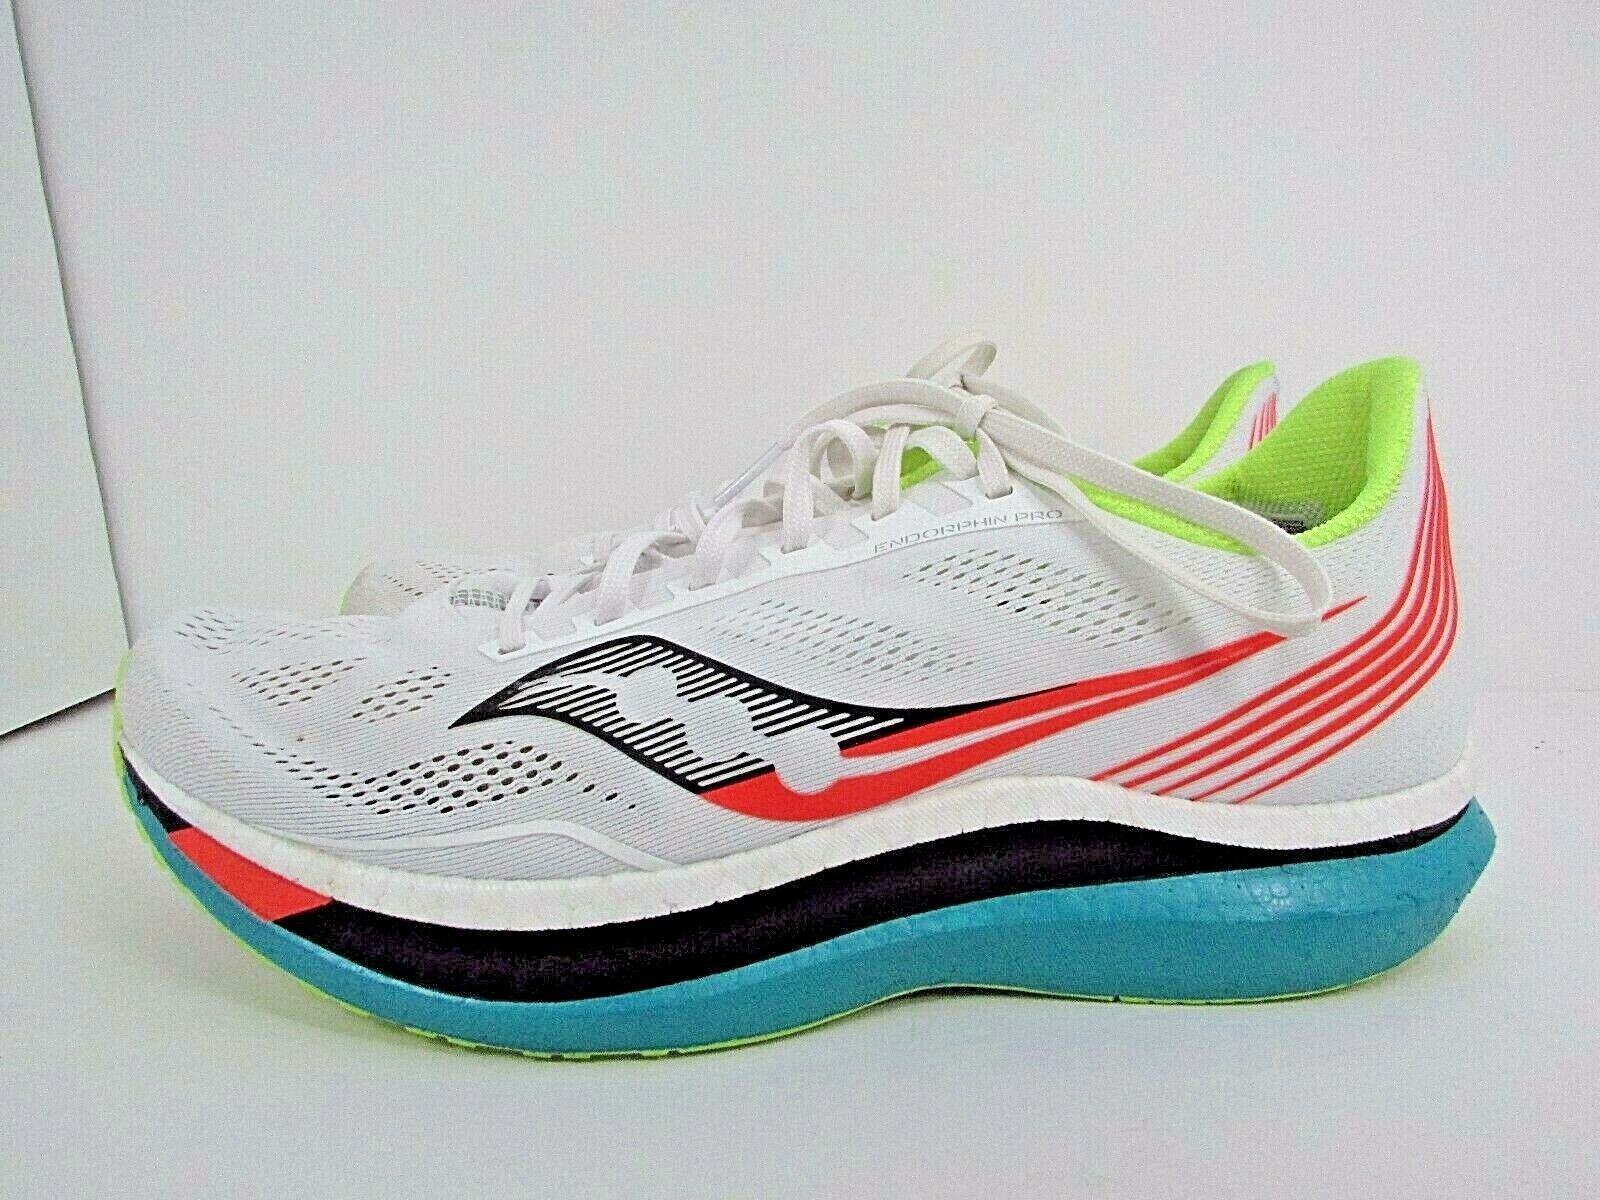 MEN'S SAUCONY ENDORPHIN PRO size 11.5 !!WORN LESS THAN 20 MILES! RUNNING SHOES!